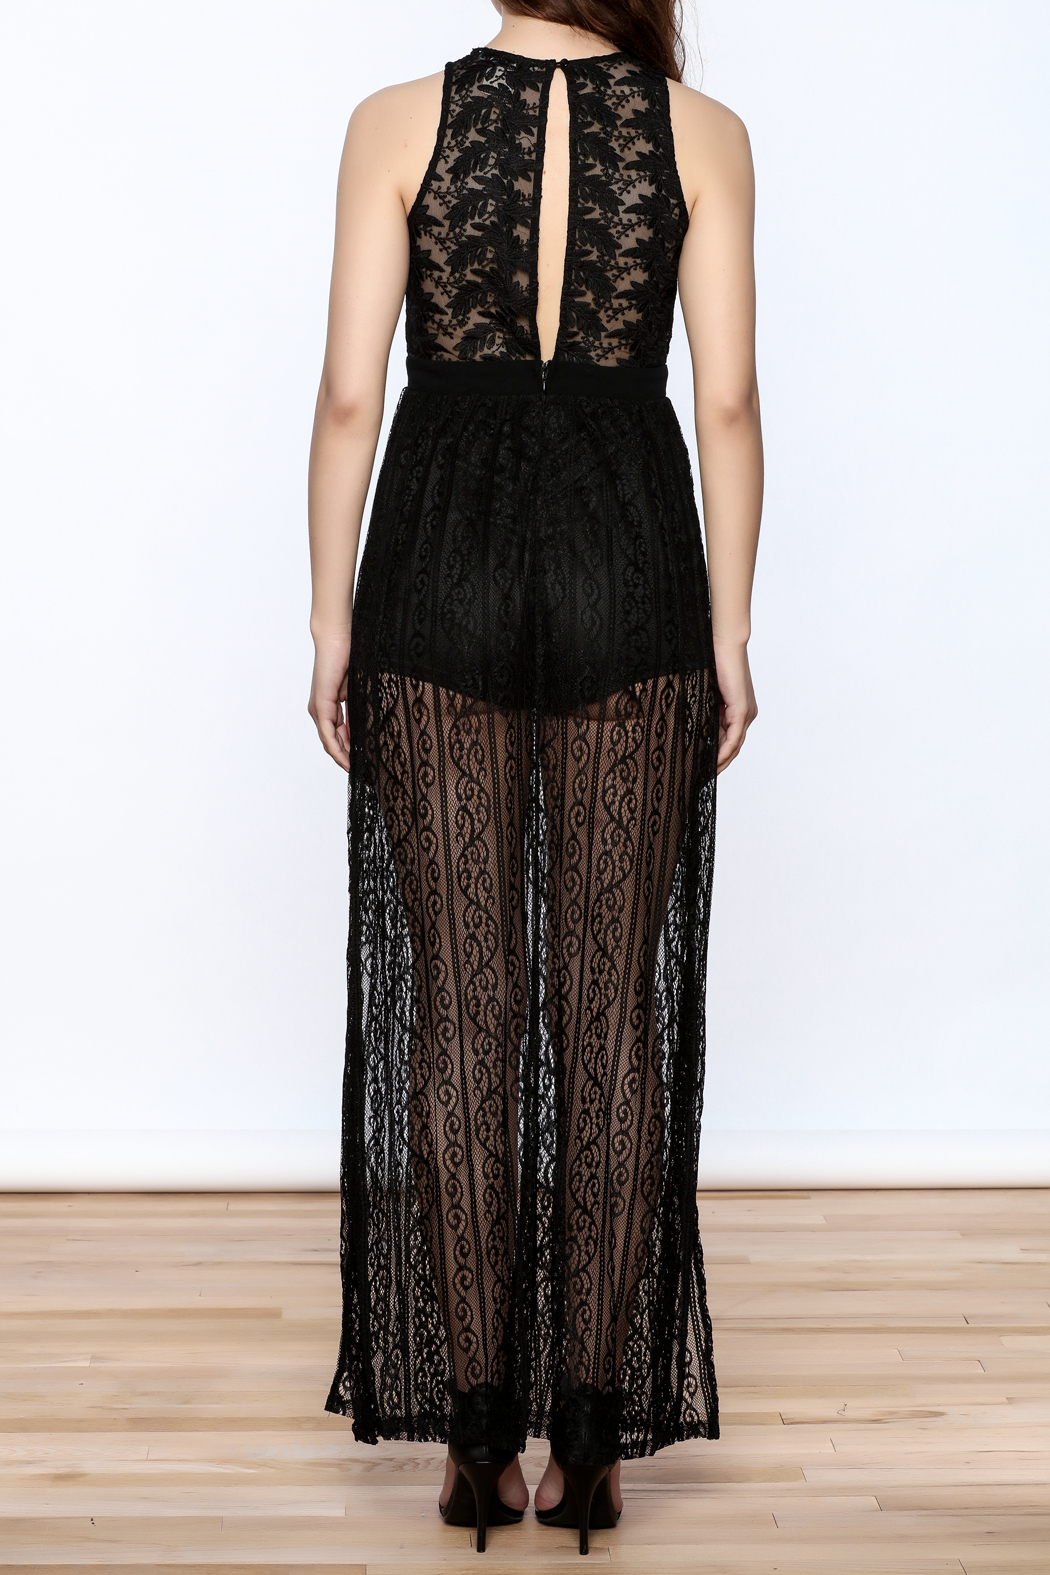 Flying Tomato Black Lace Dress - Back Cropped Image